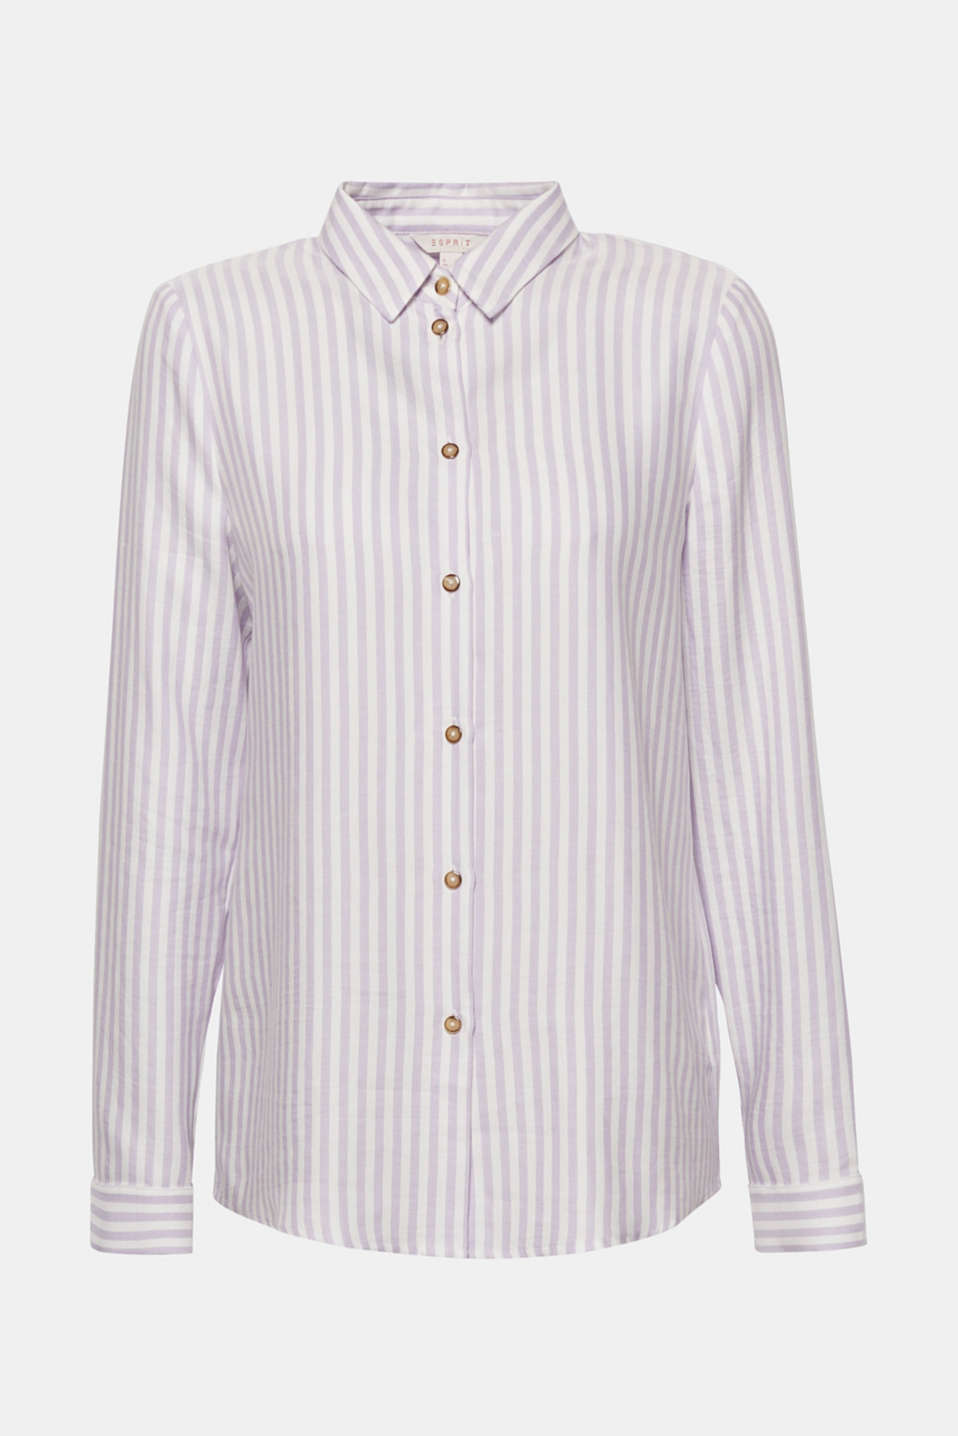 Casual favourite blouse in a shirt style: Fashionable vertical stripes and the softly draped fabric give this straight cut blouse a certain je ne sais quoi!